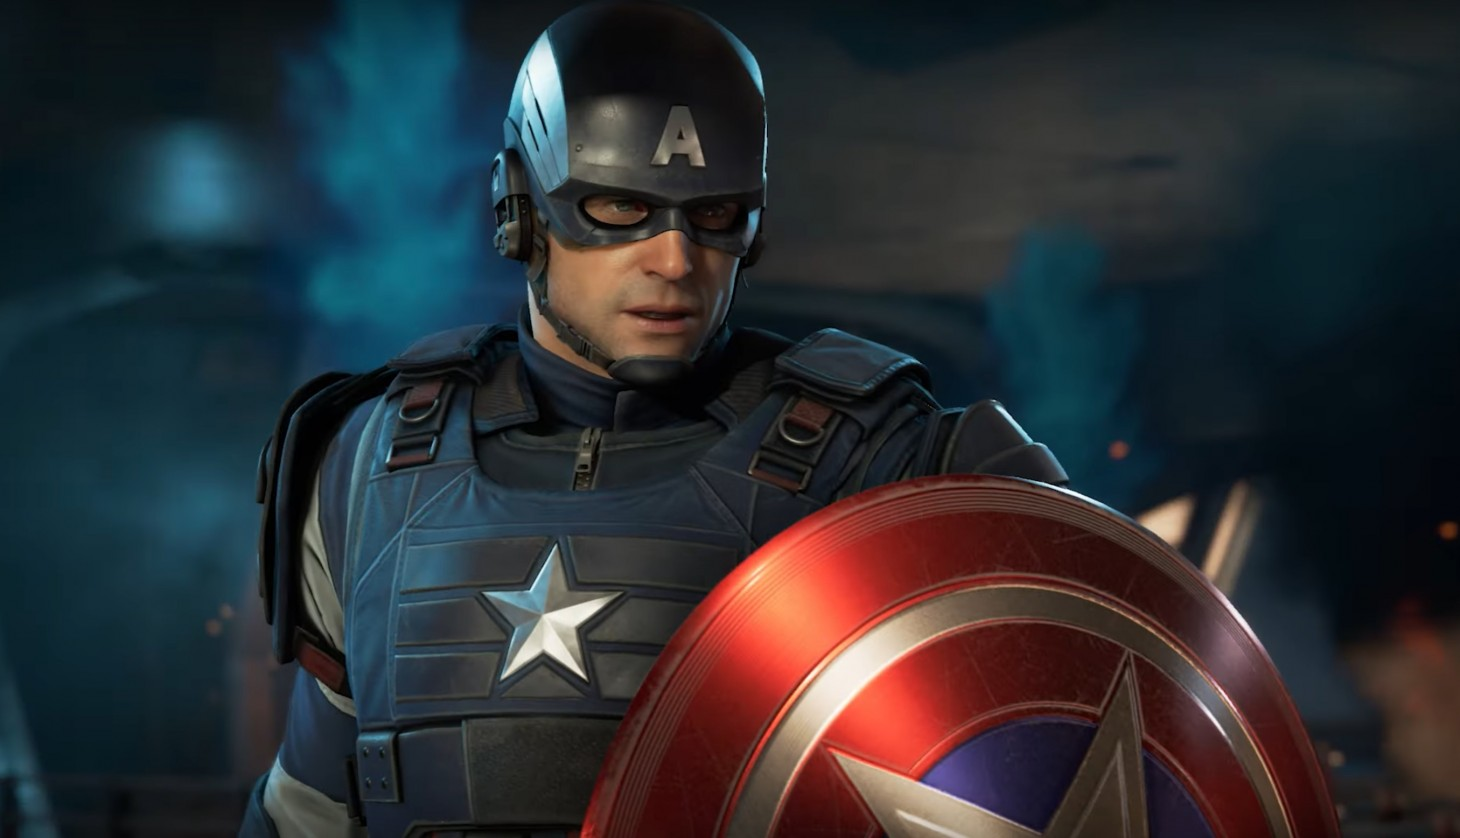 We Saw 25 Minutes Of Avengers Gameplay – Here's What You